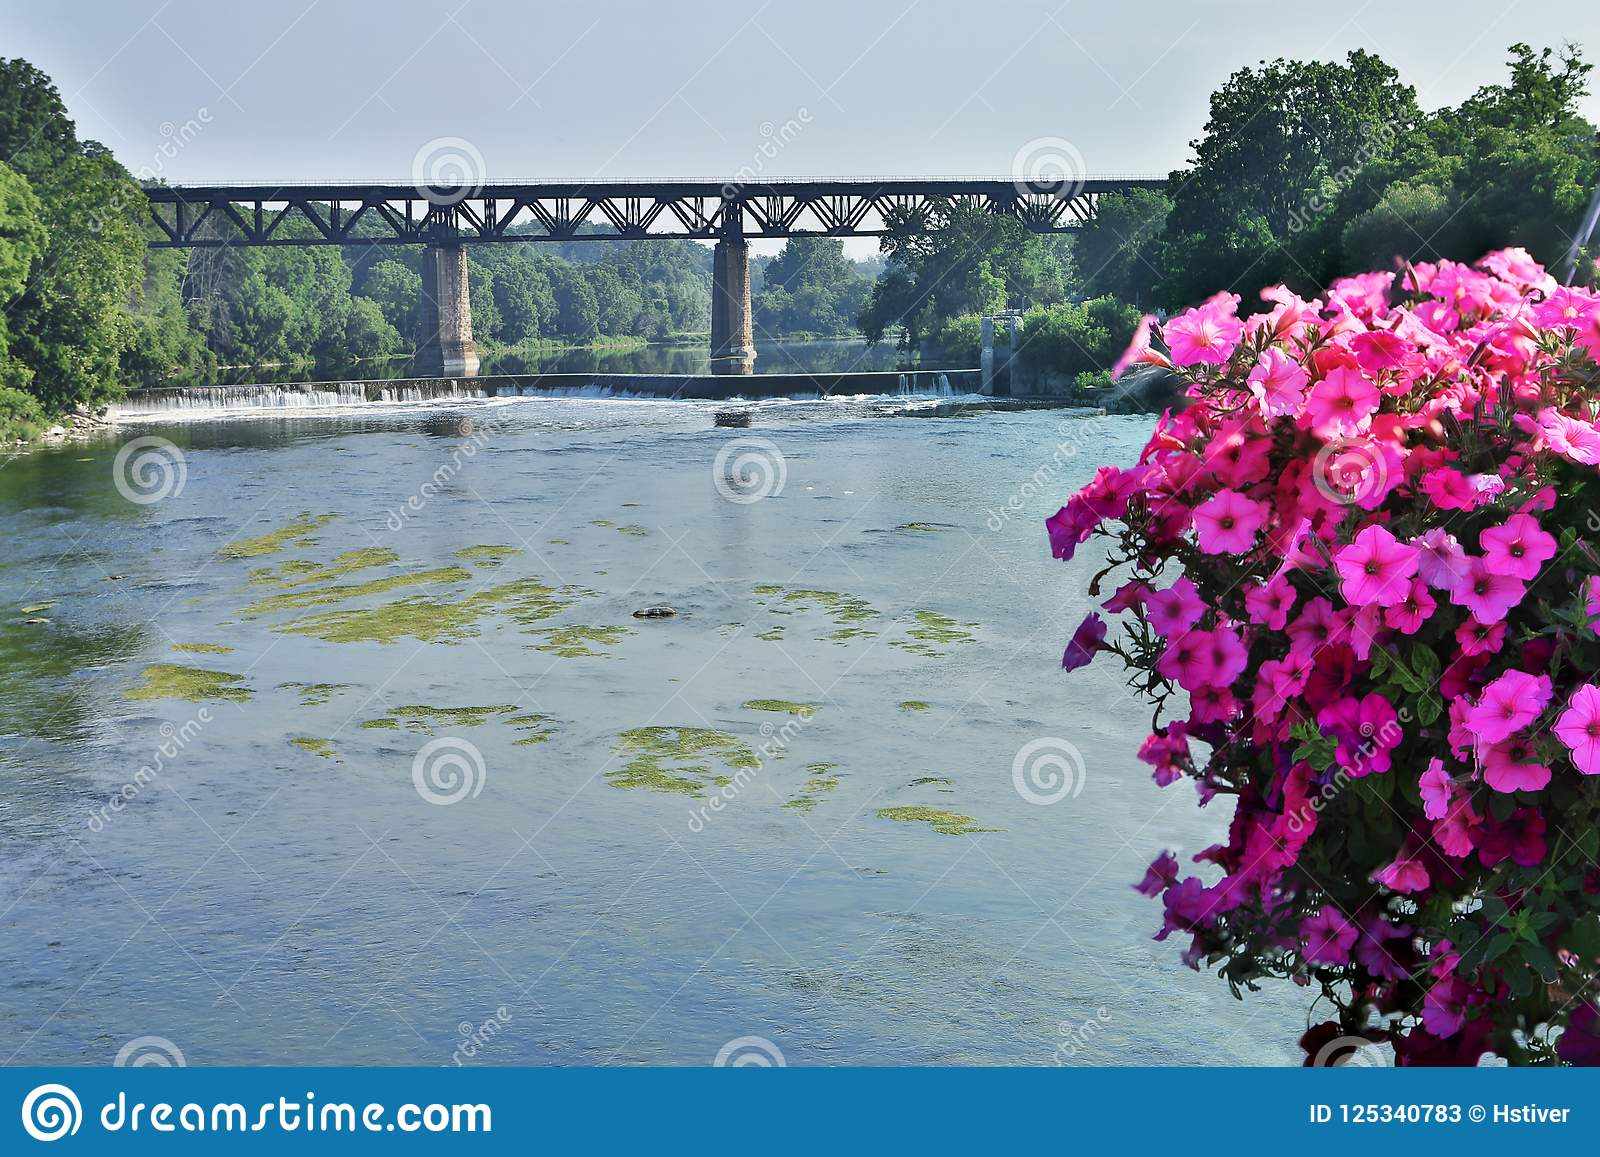 Grand River Flow >> Grand River At Paris Ontario Canada With Flowers In